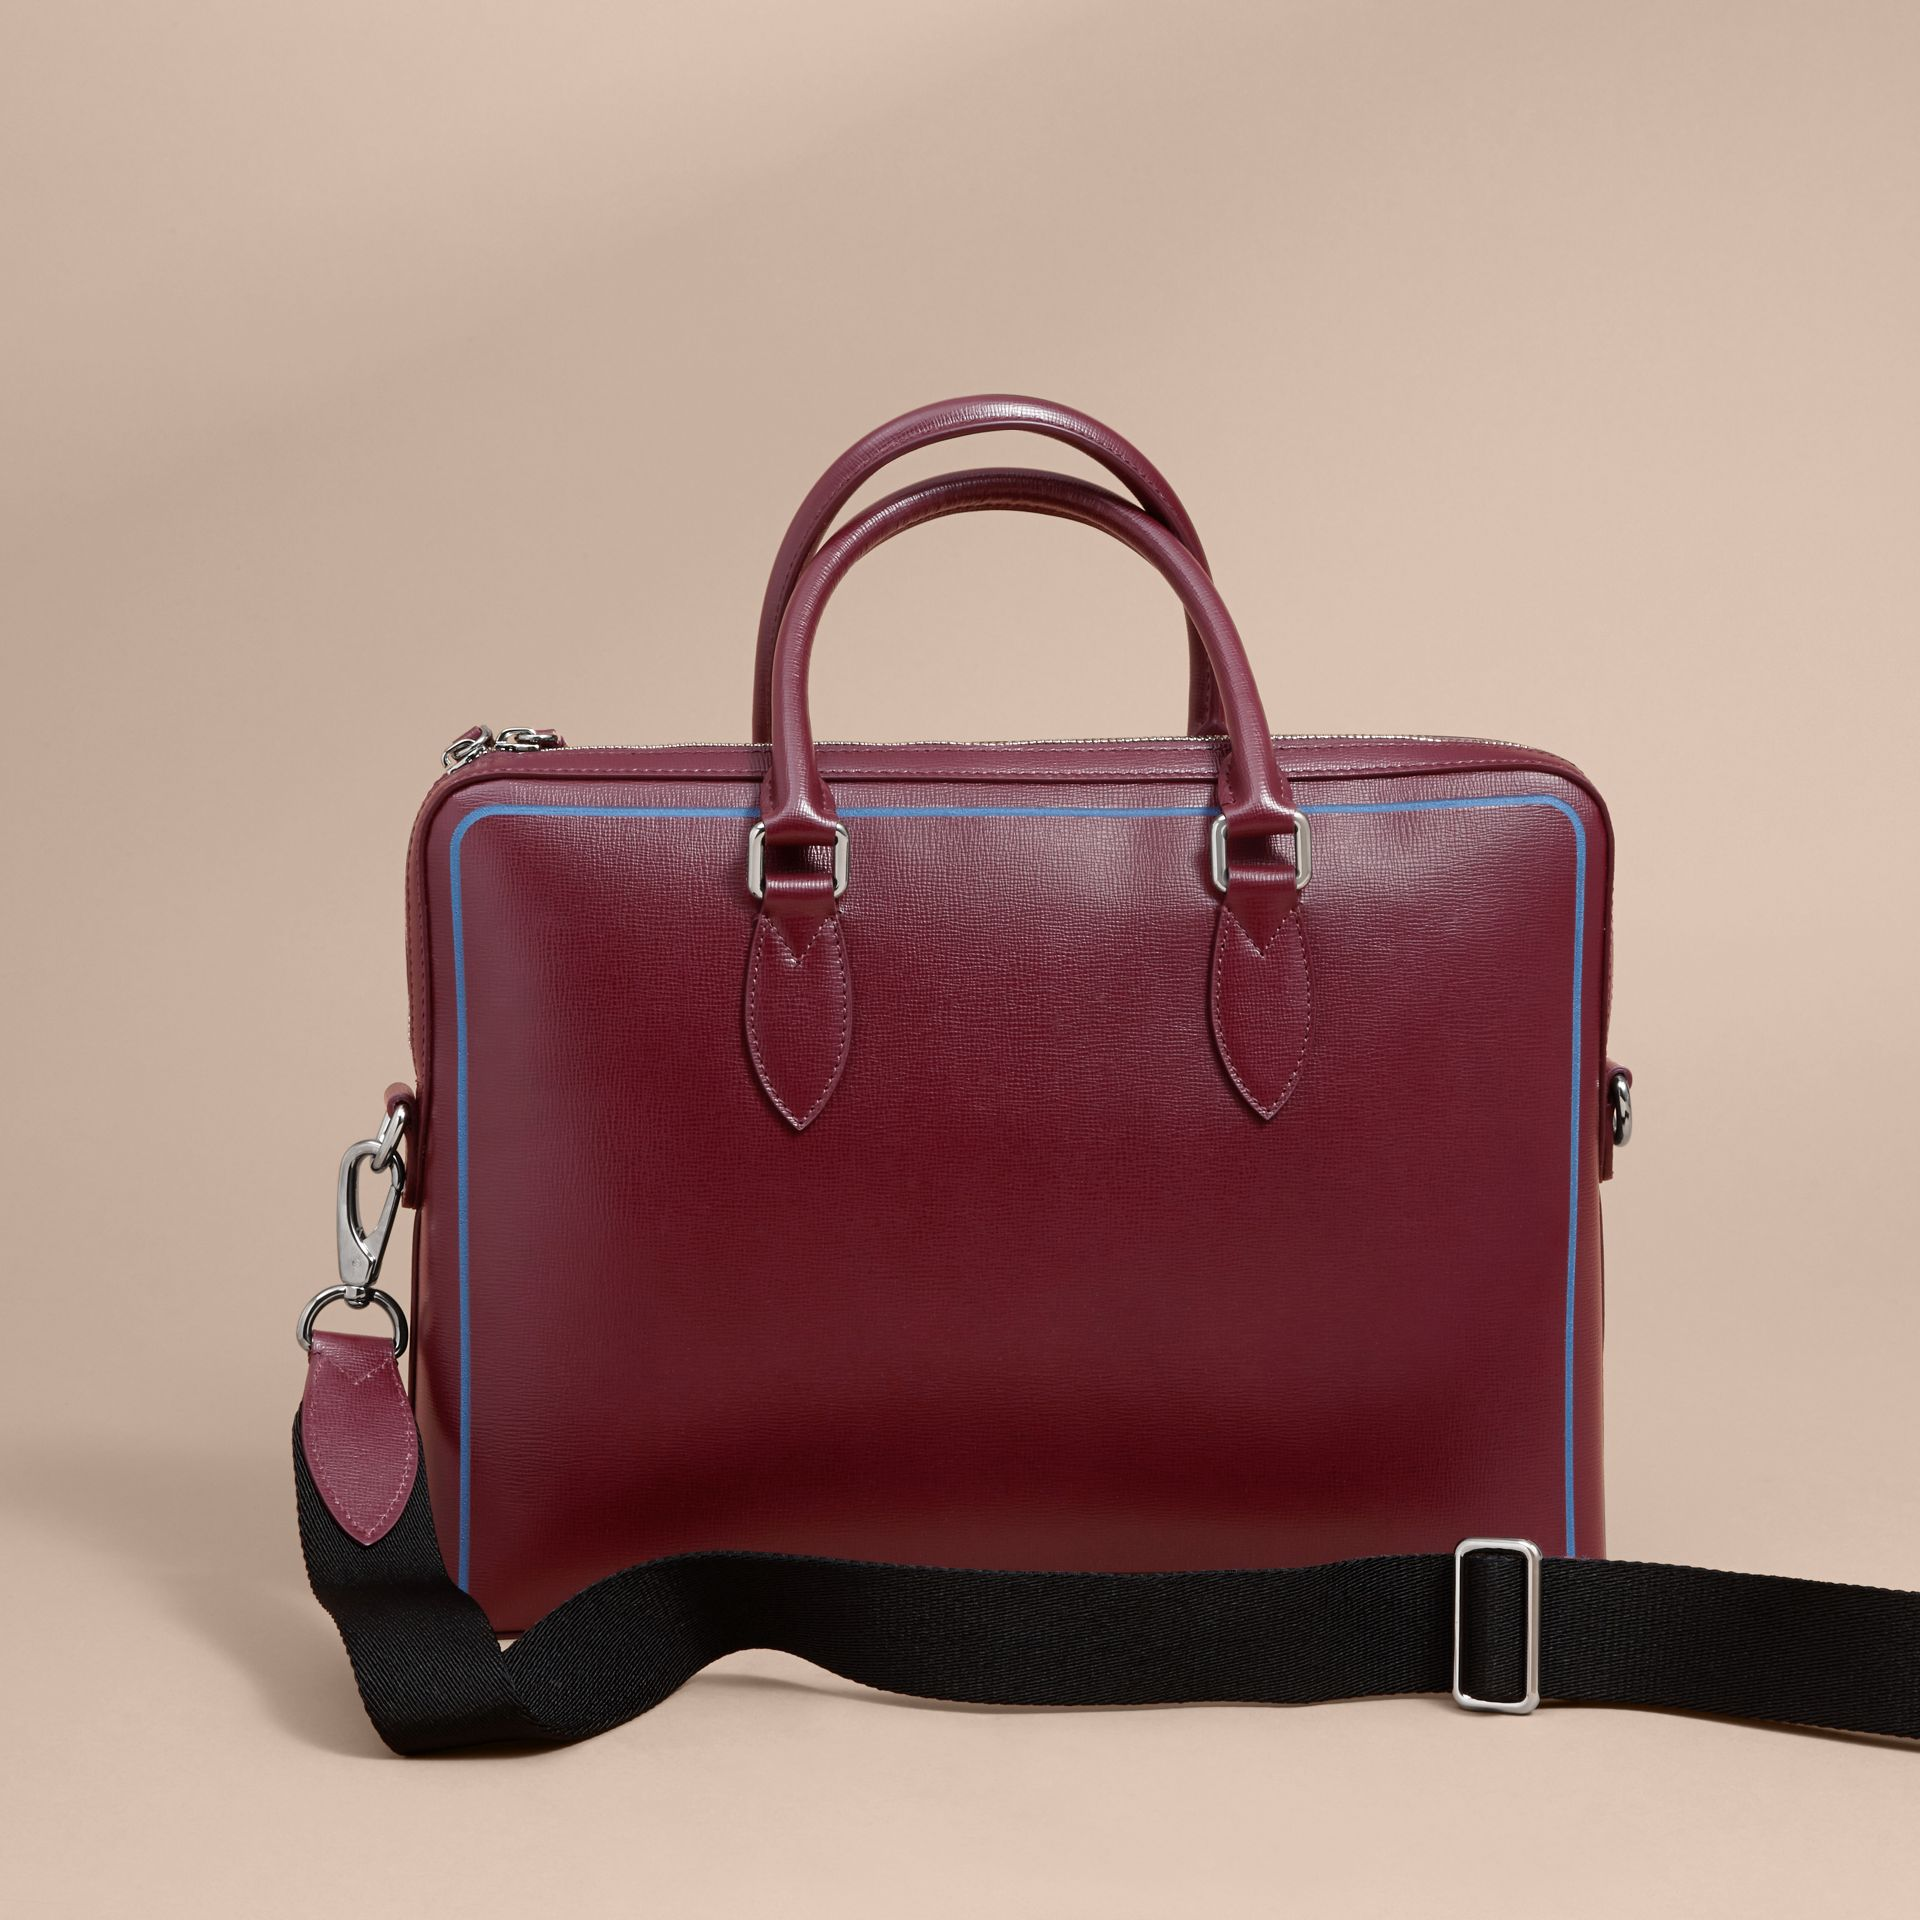 Burgundy red The Slim Barrow Bag in London Leather with Border Detail Burgundy Red - gallery image 5